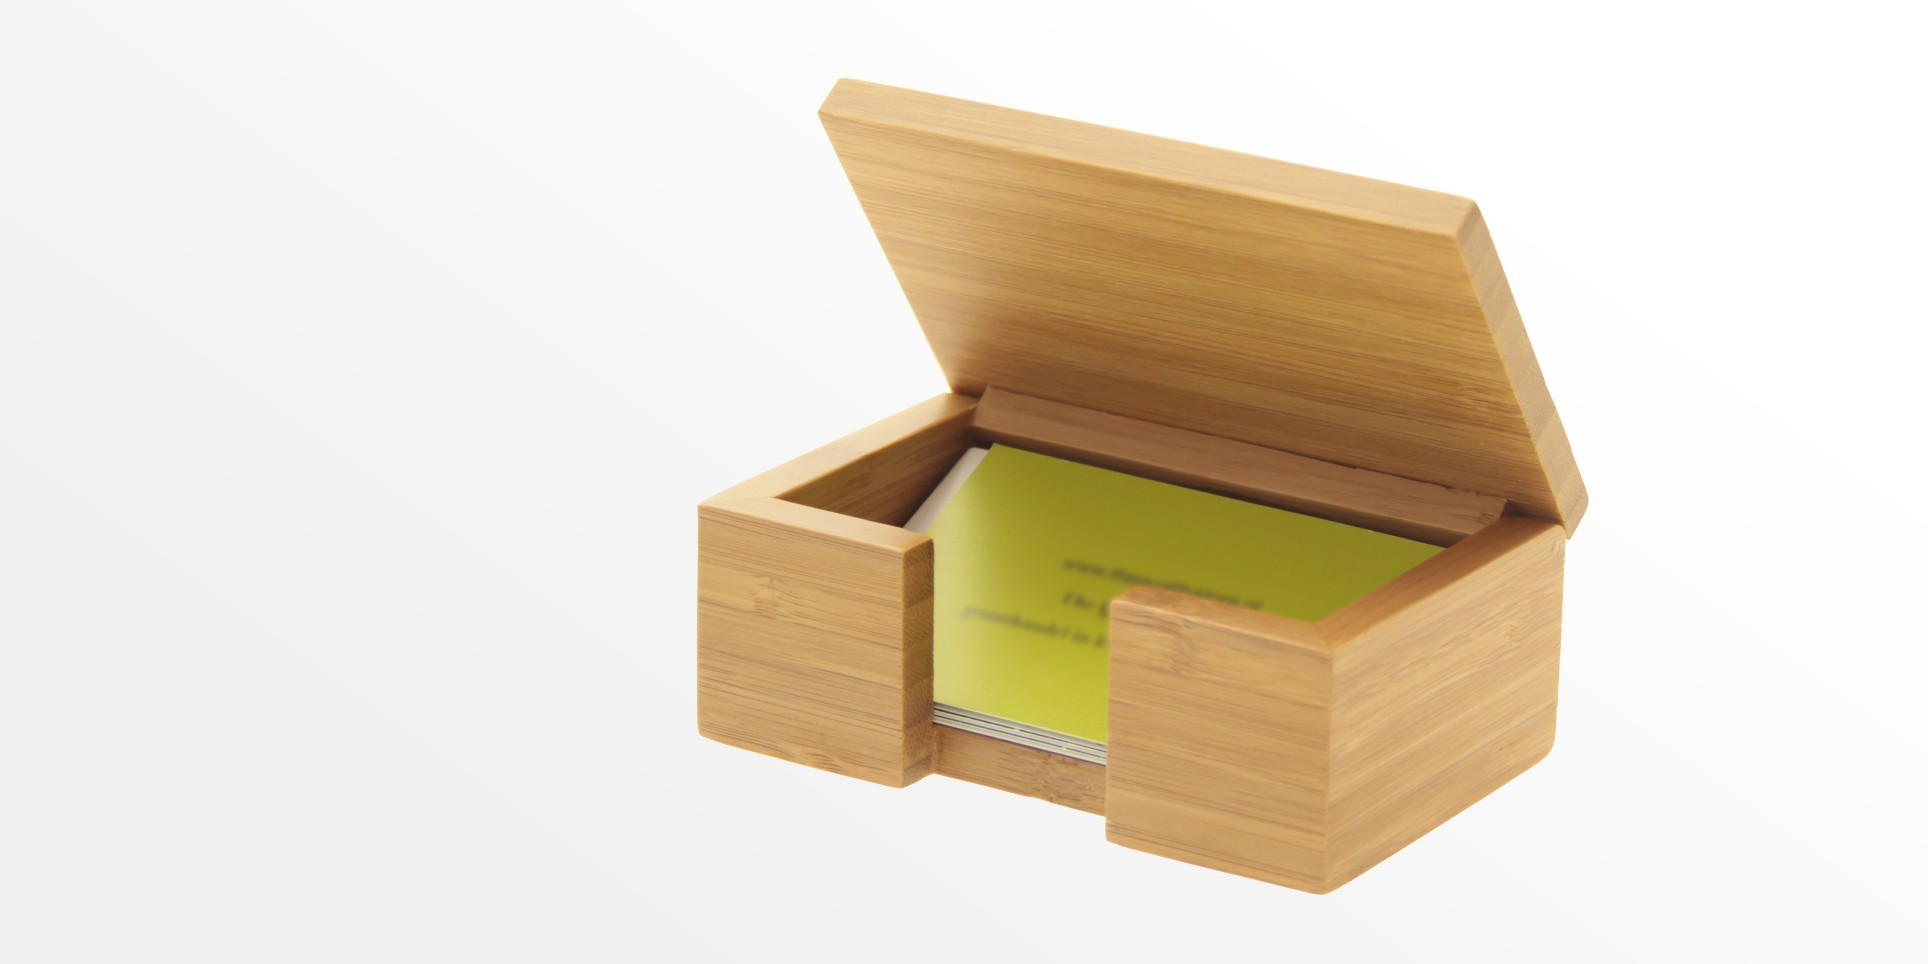 Bamboo card box business card holder office supplies business card holder colourmoves